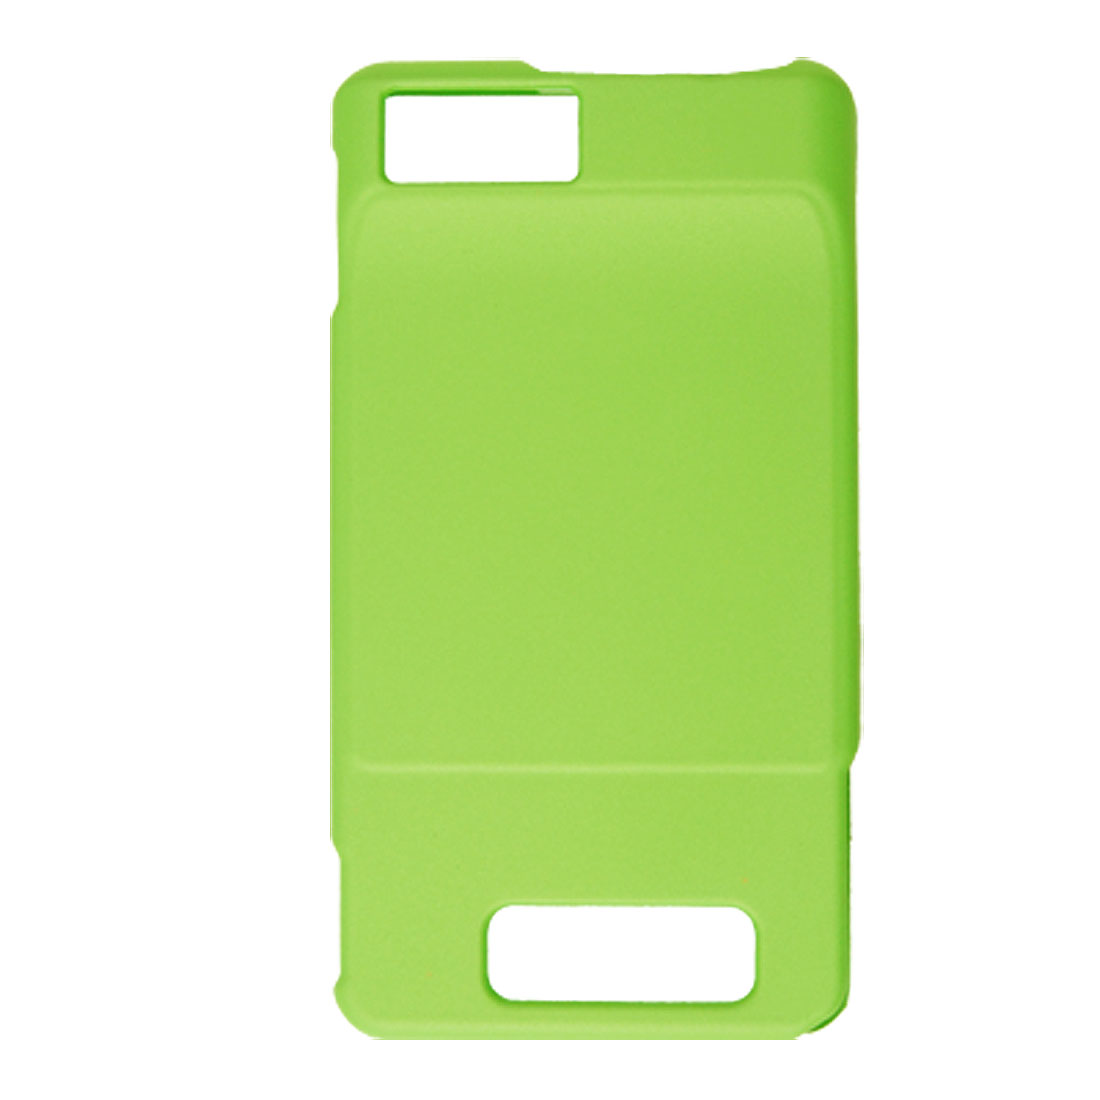 Green Hard Plastic Rubberized Case for Motorola MB810